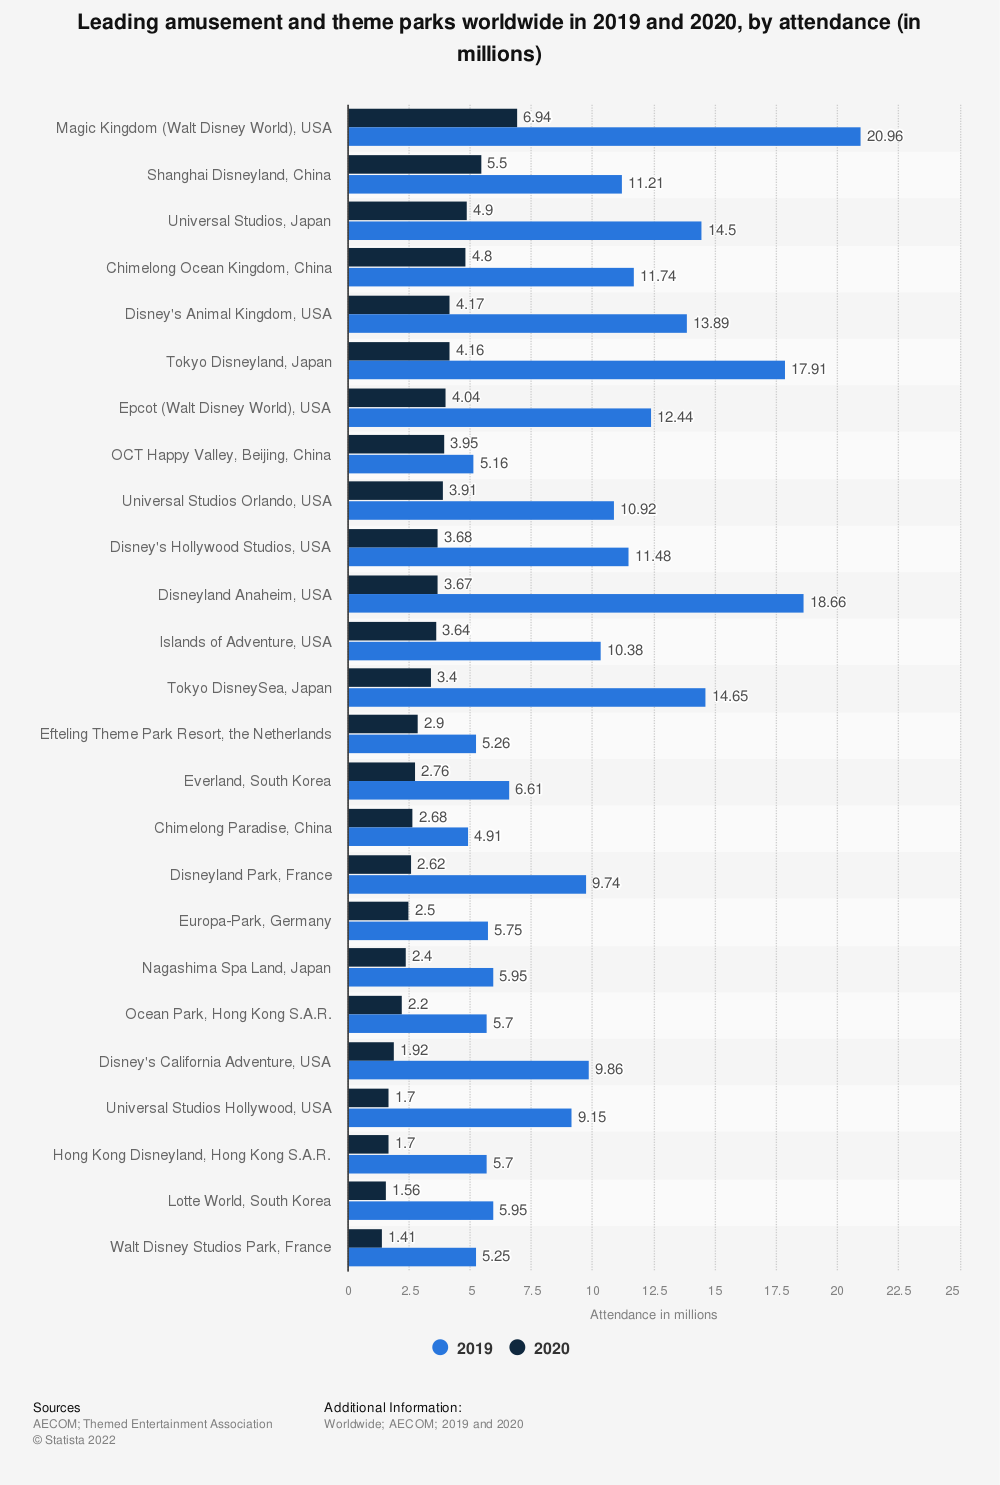 Statistic: Attendance at amusement and theme parks worldwide by facility in 2019 (in millions) | Statista